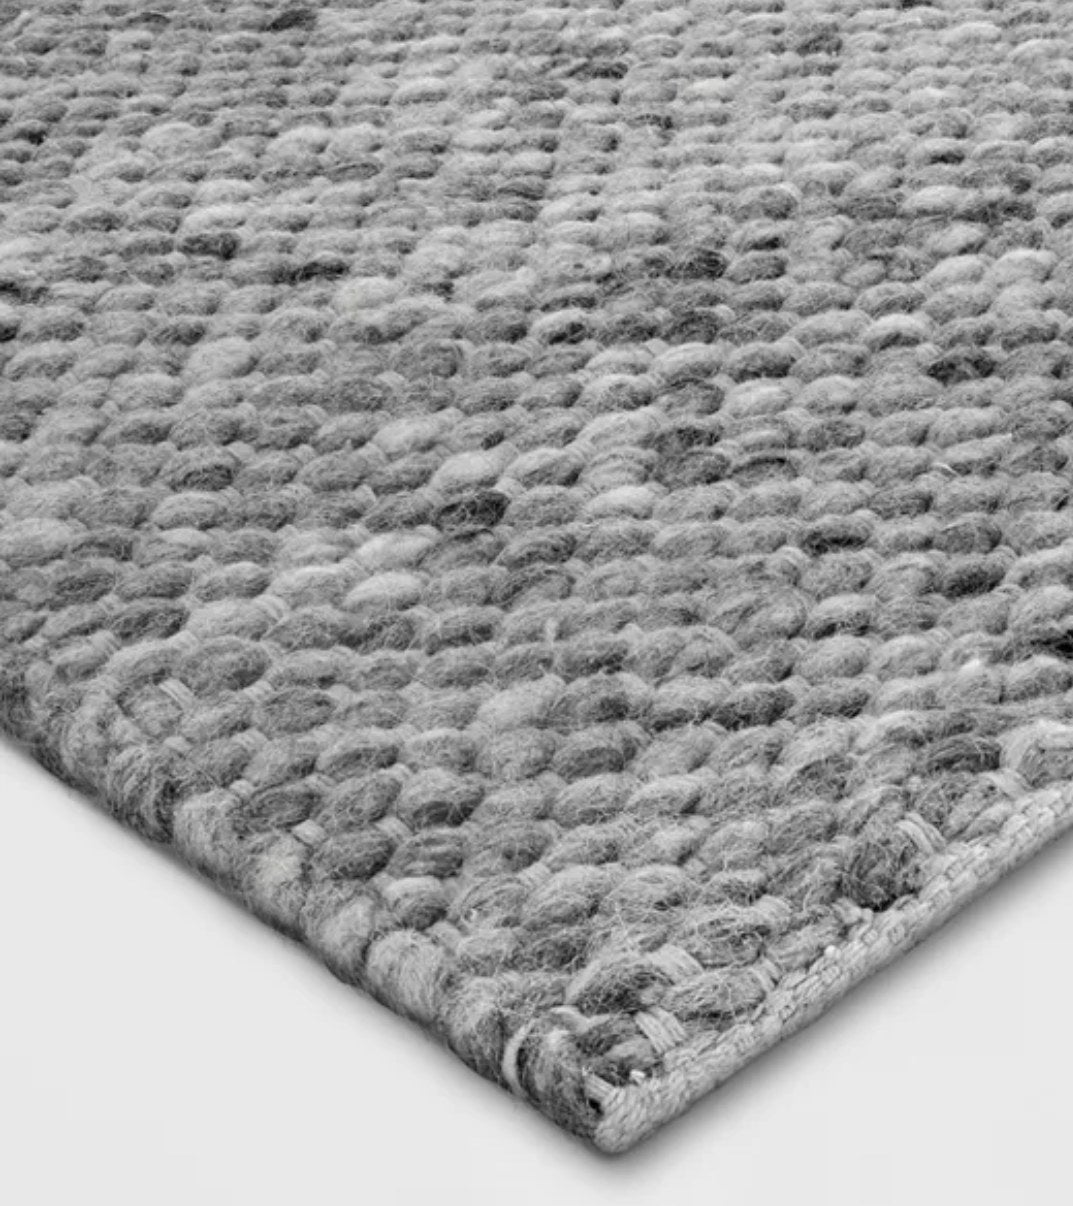 A closeup of the rug's texture